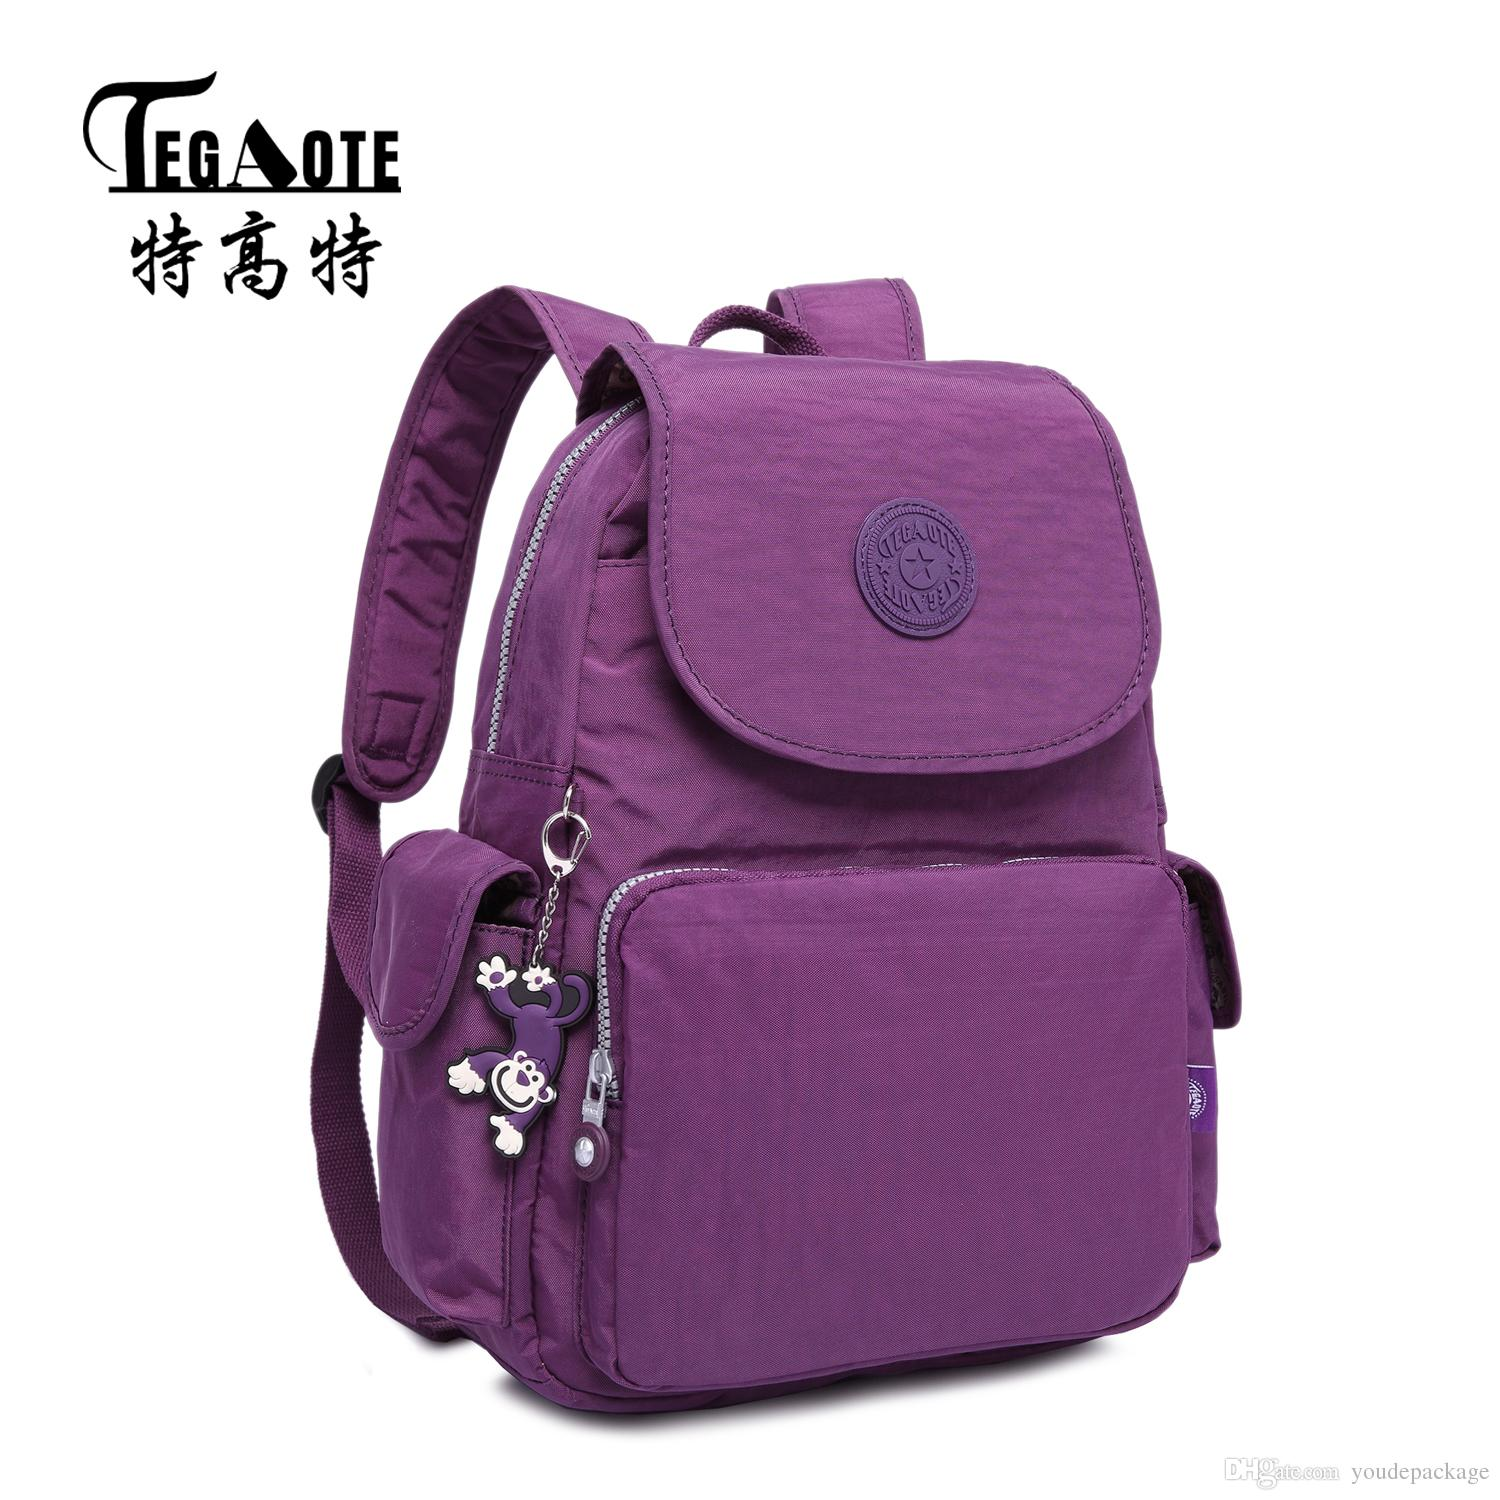 Tegaote 2017 Women Backpack Waterproof Nylon Lady Women'S ...